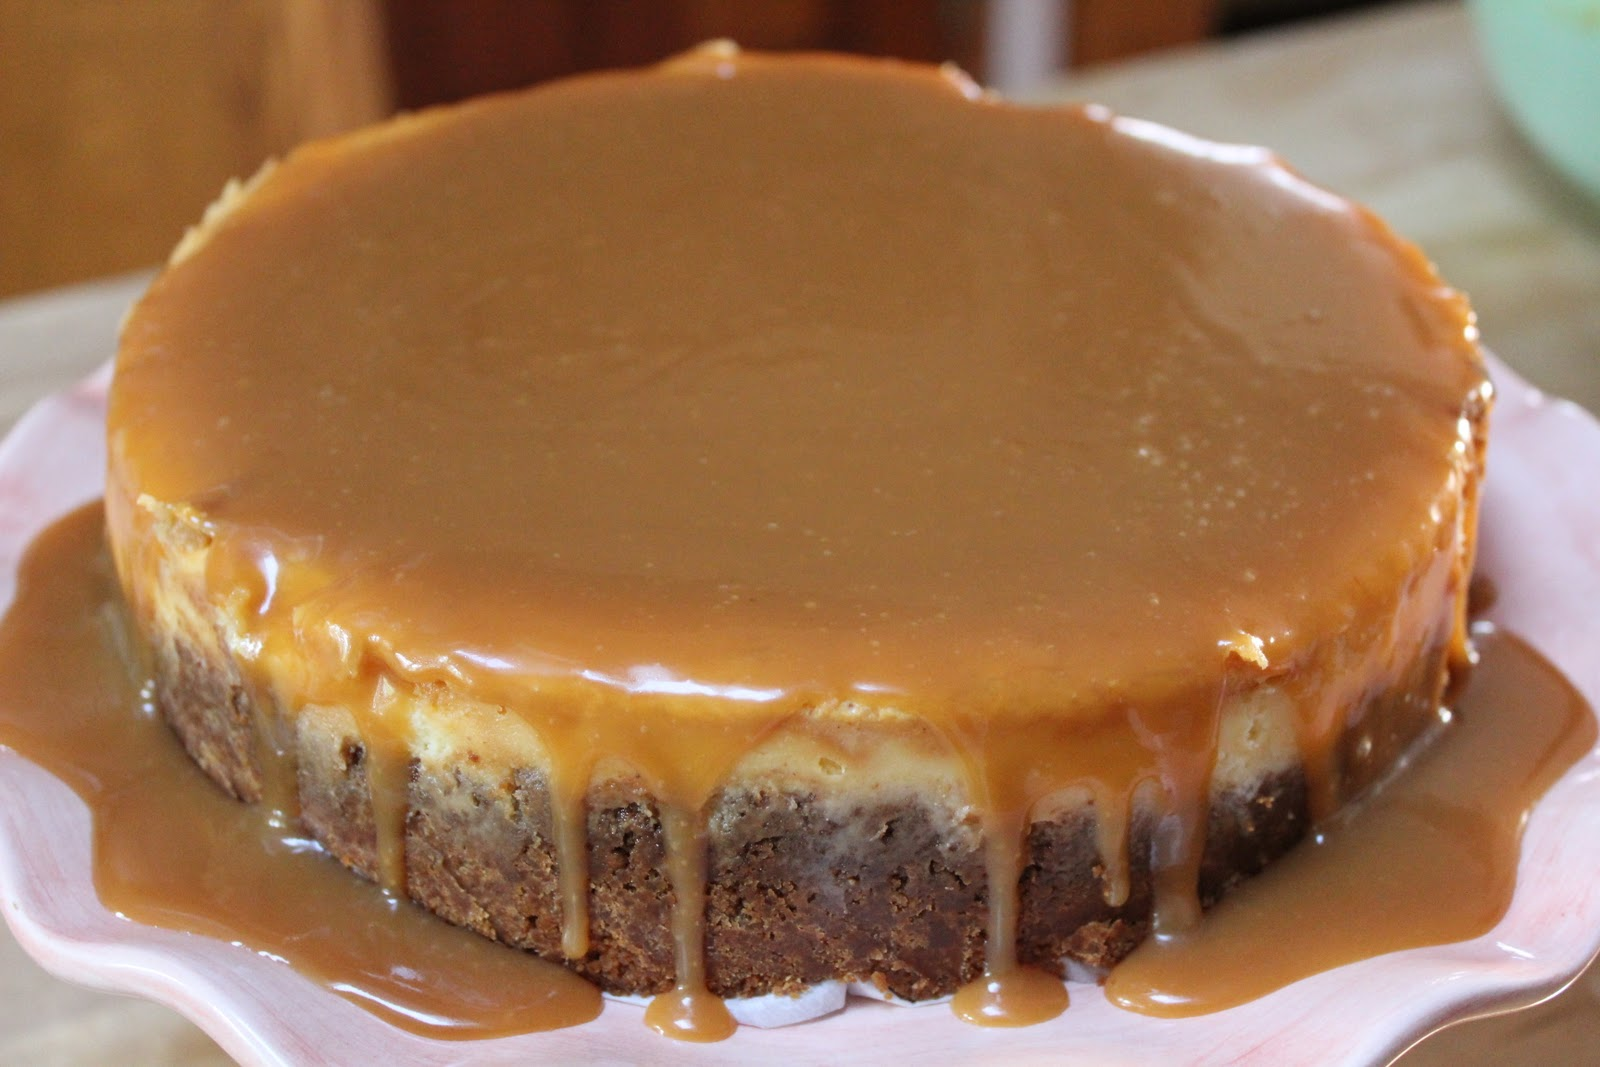 ... basic cakes chocolate caramel cheesecake chocolate caramel cheesecake